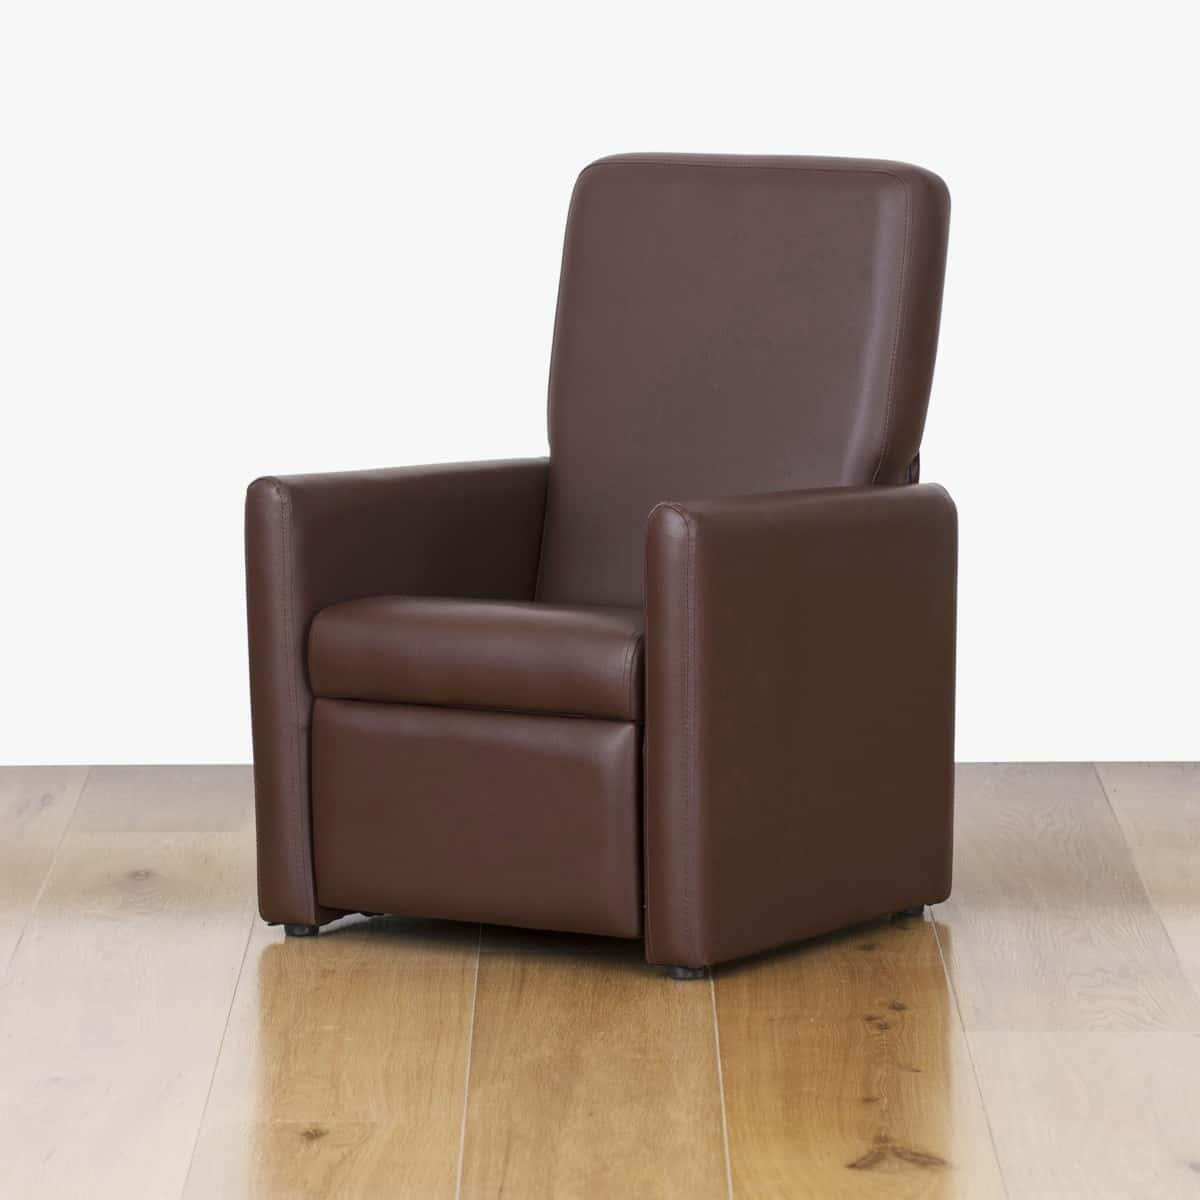 Watoto Kids Recliner Chair - Chocolate Brown